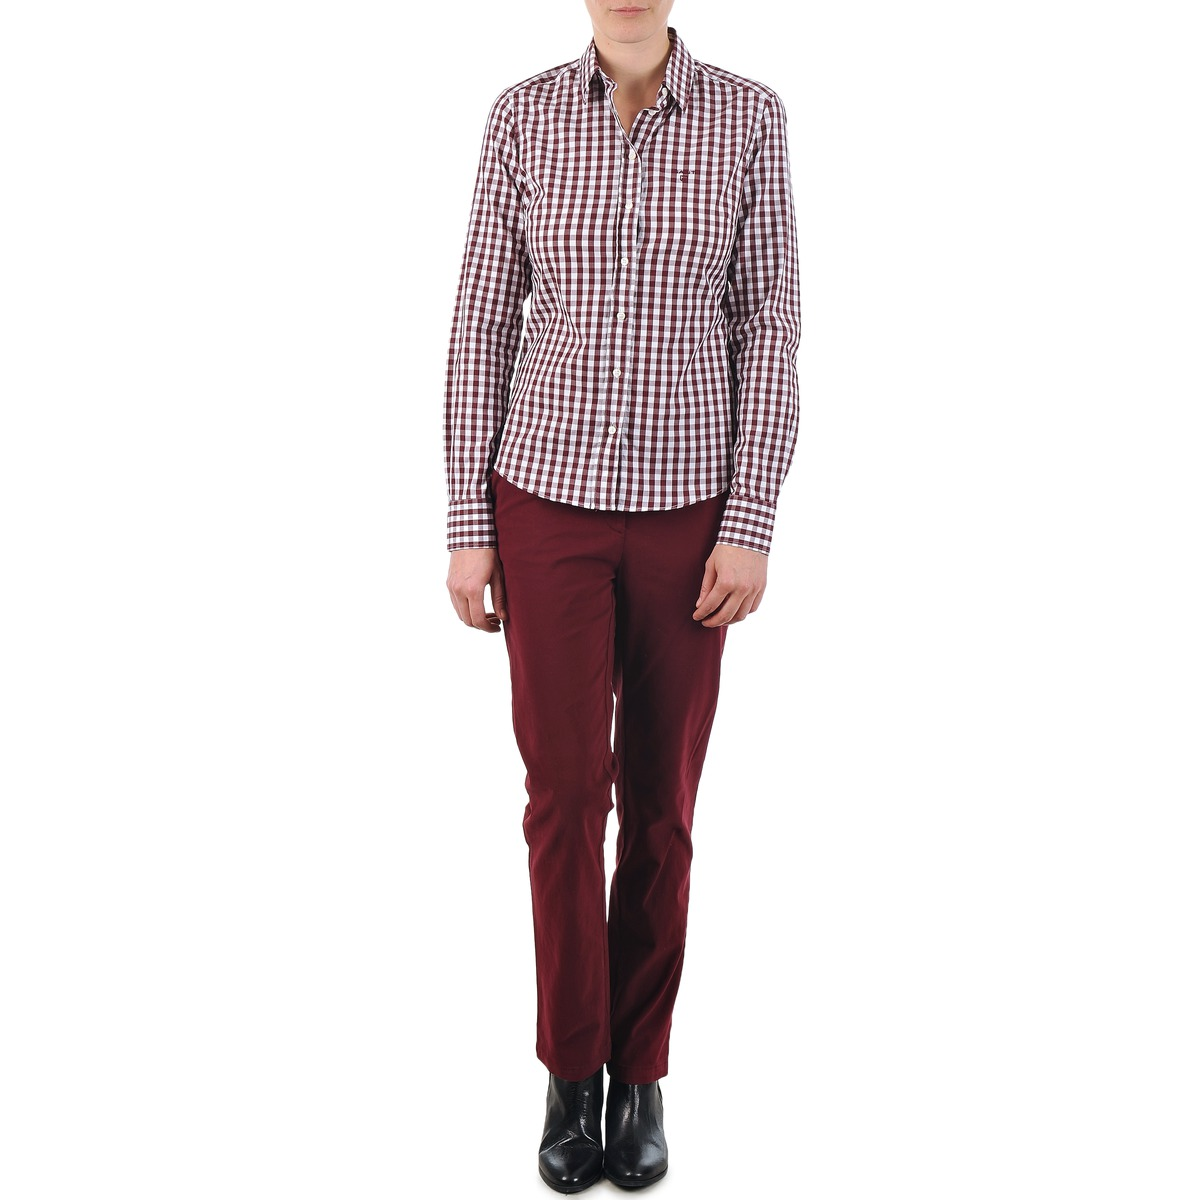 Gant C. COIN POCKET CHINO Bordeaux